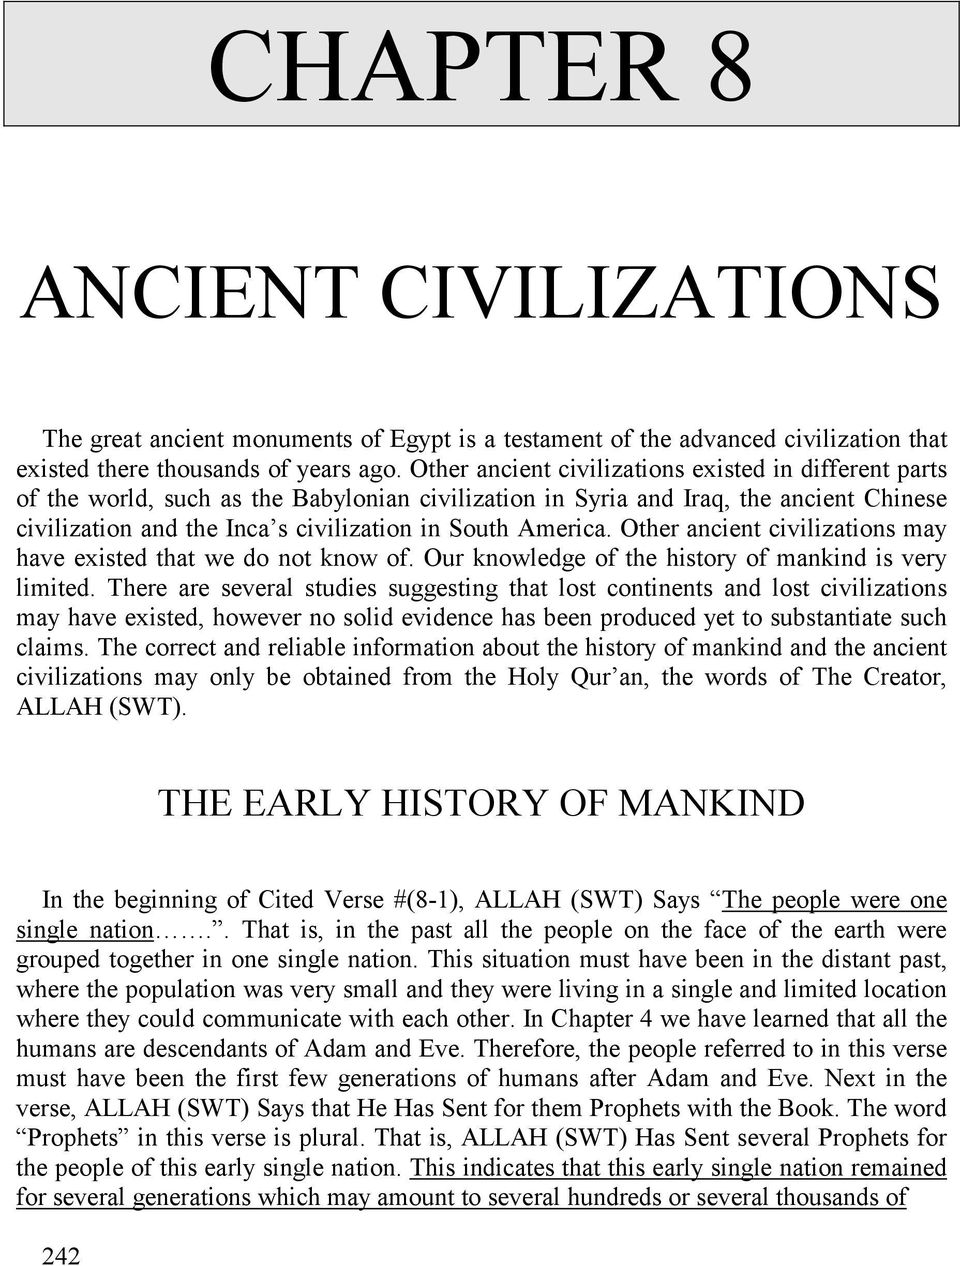 America. Other ancient civilizations may have existed that we do not know of. Our knowledge of the history of mankind is very limited.